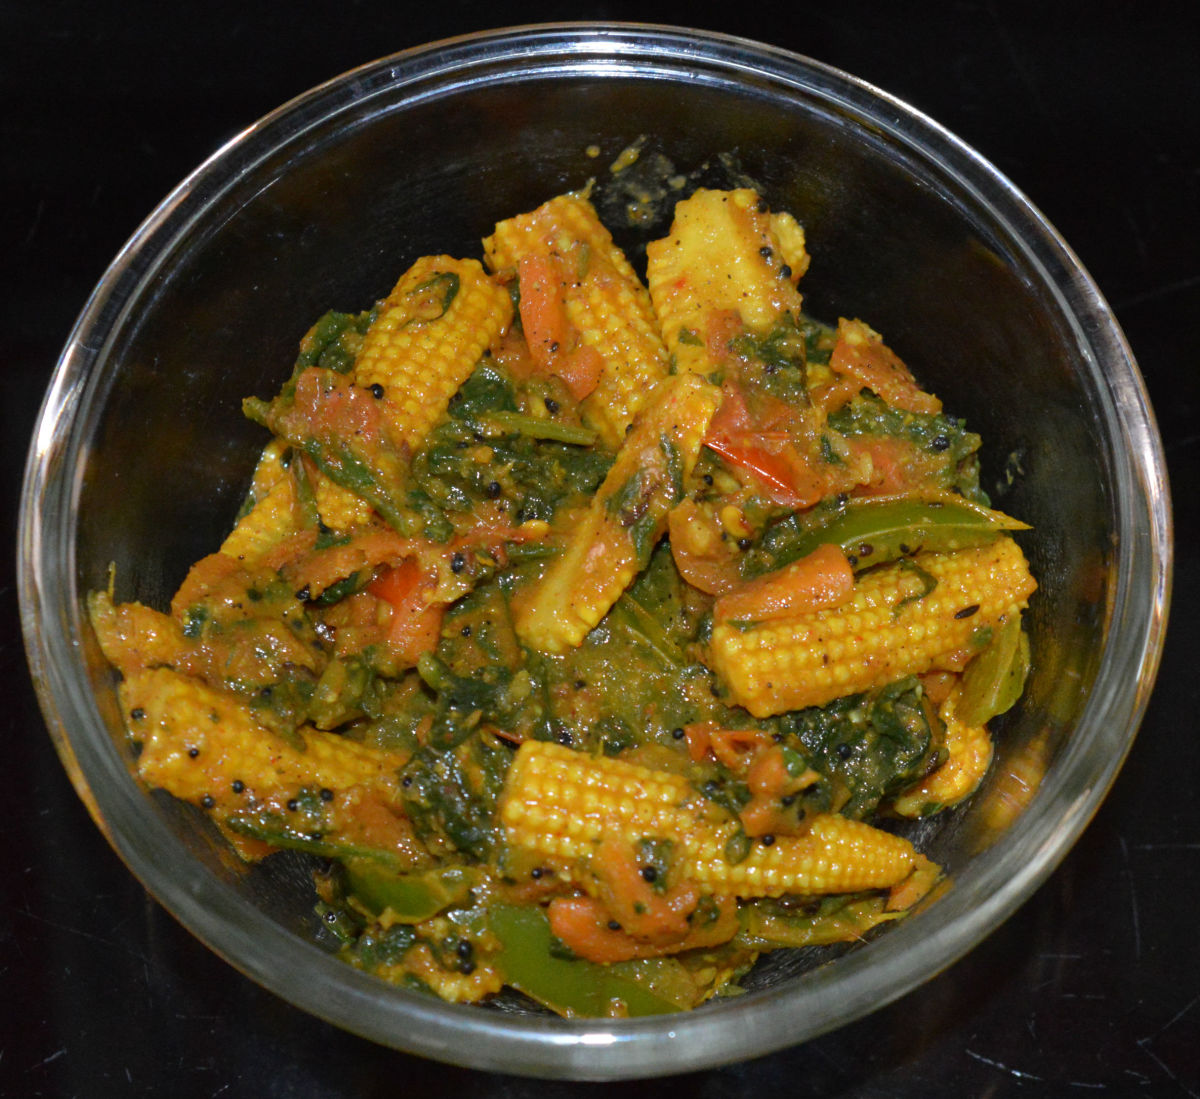 Now, your favorite baby corn and spinach easy curry is ready! Serve it with steamed rice, fried rice, or flatbreads. Enjoy the combo!